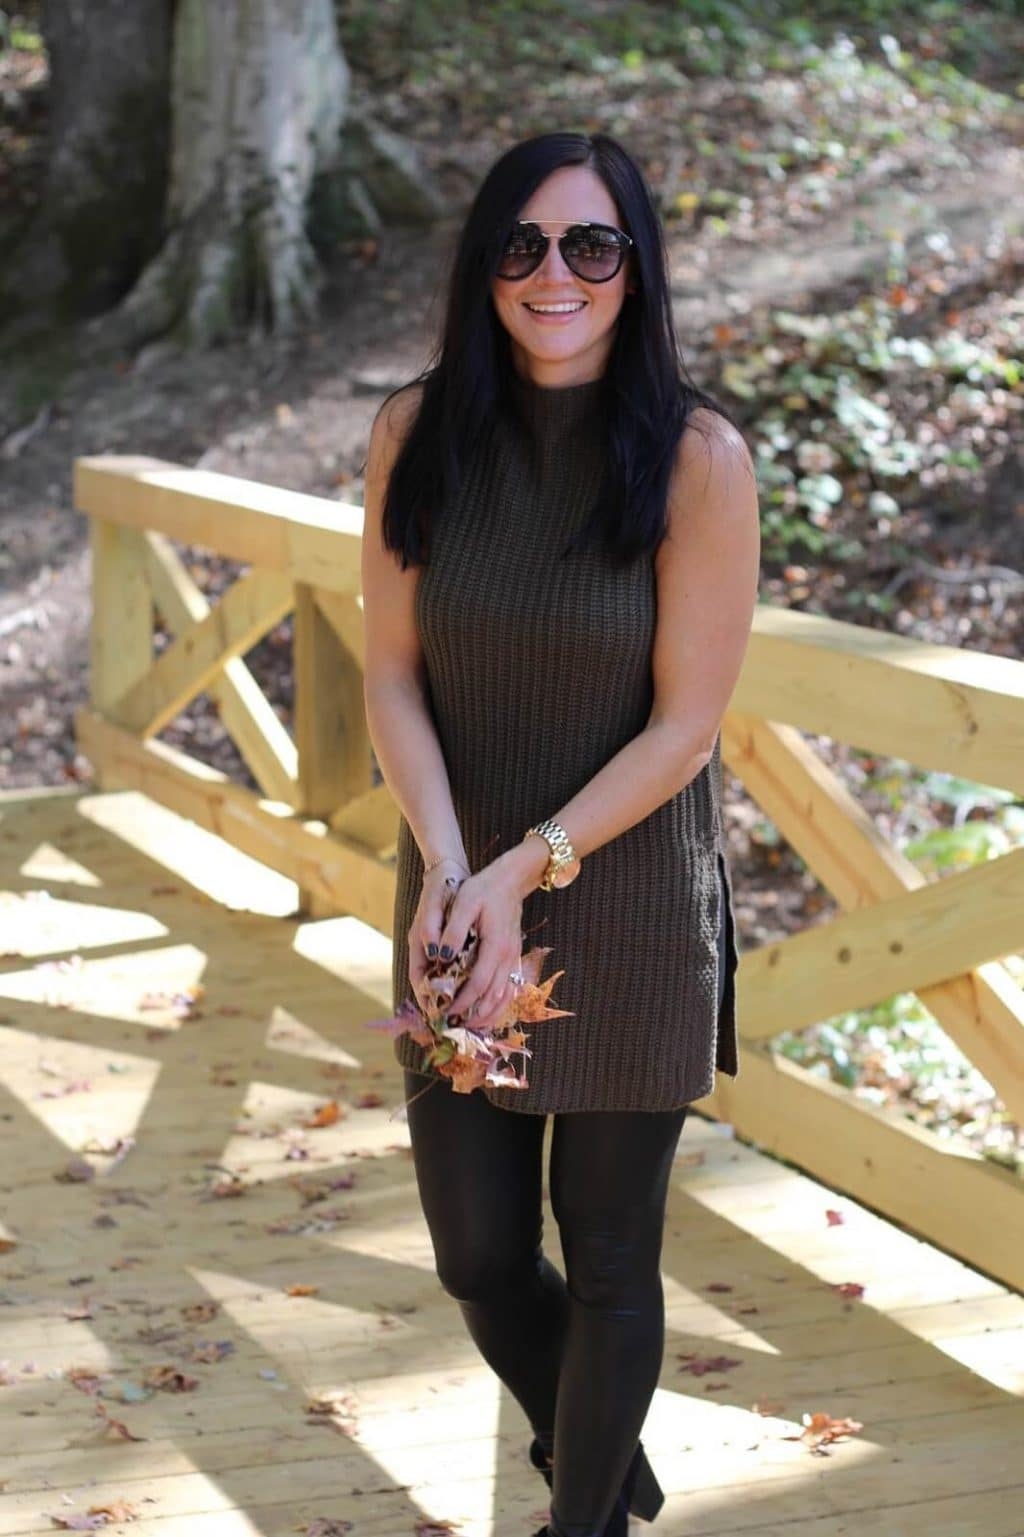 Olive and black style for fall